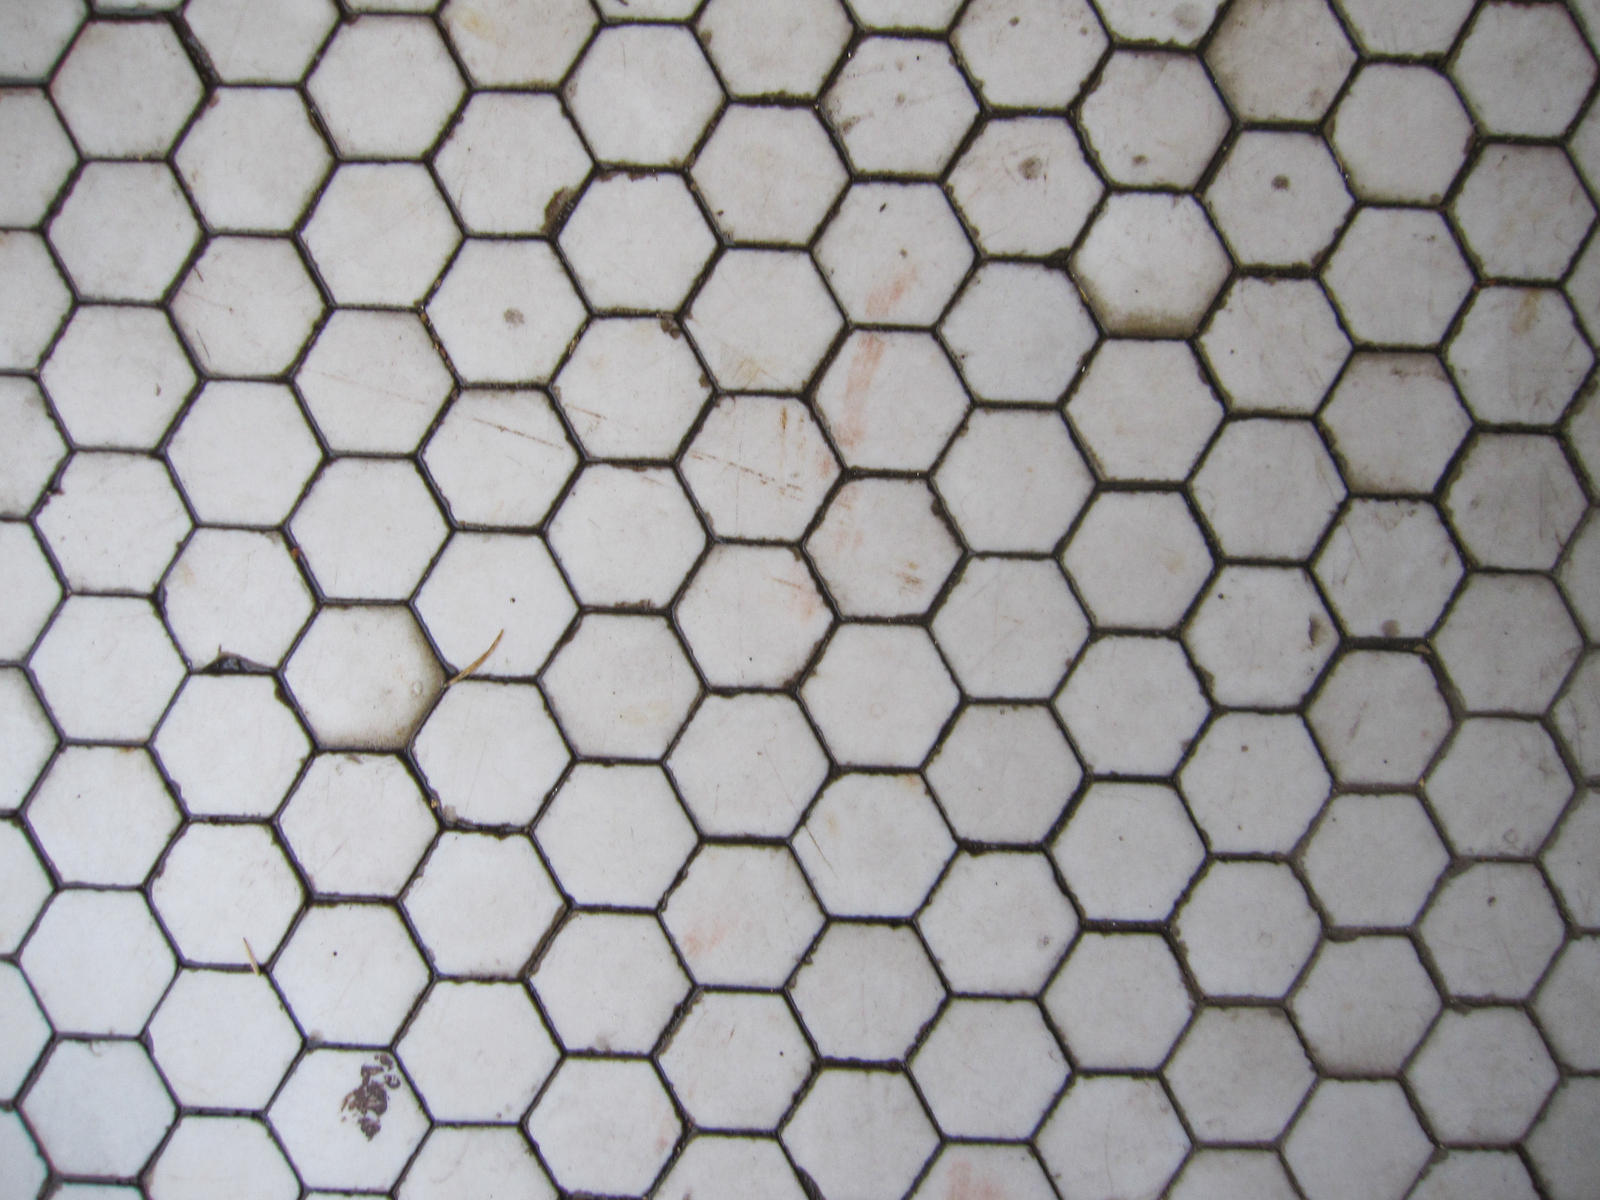 Grungy Old Tile Floor by element321